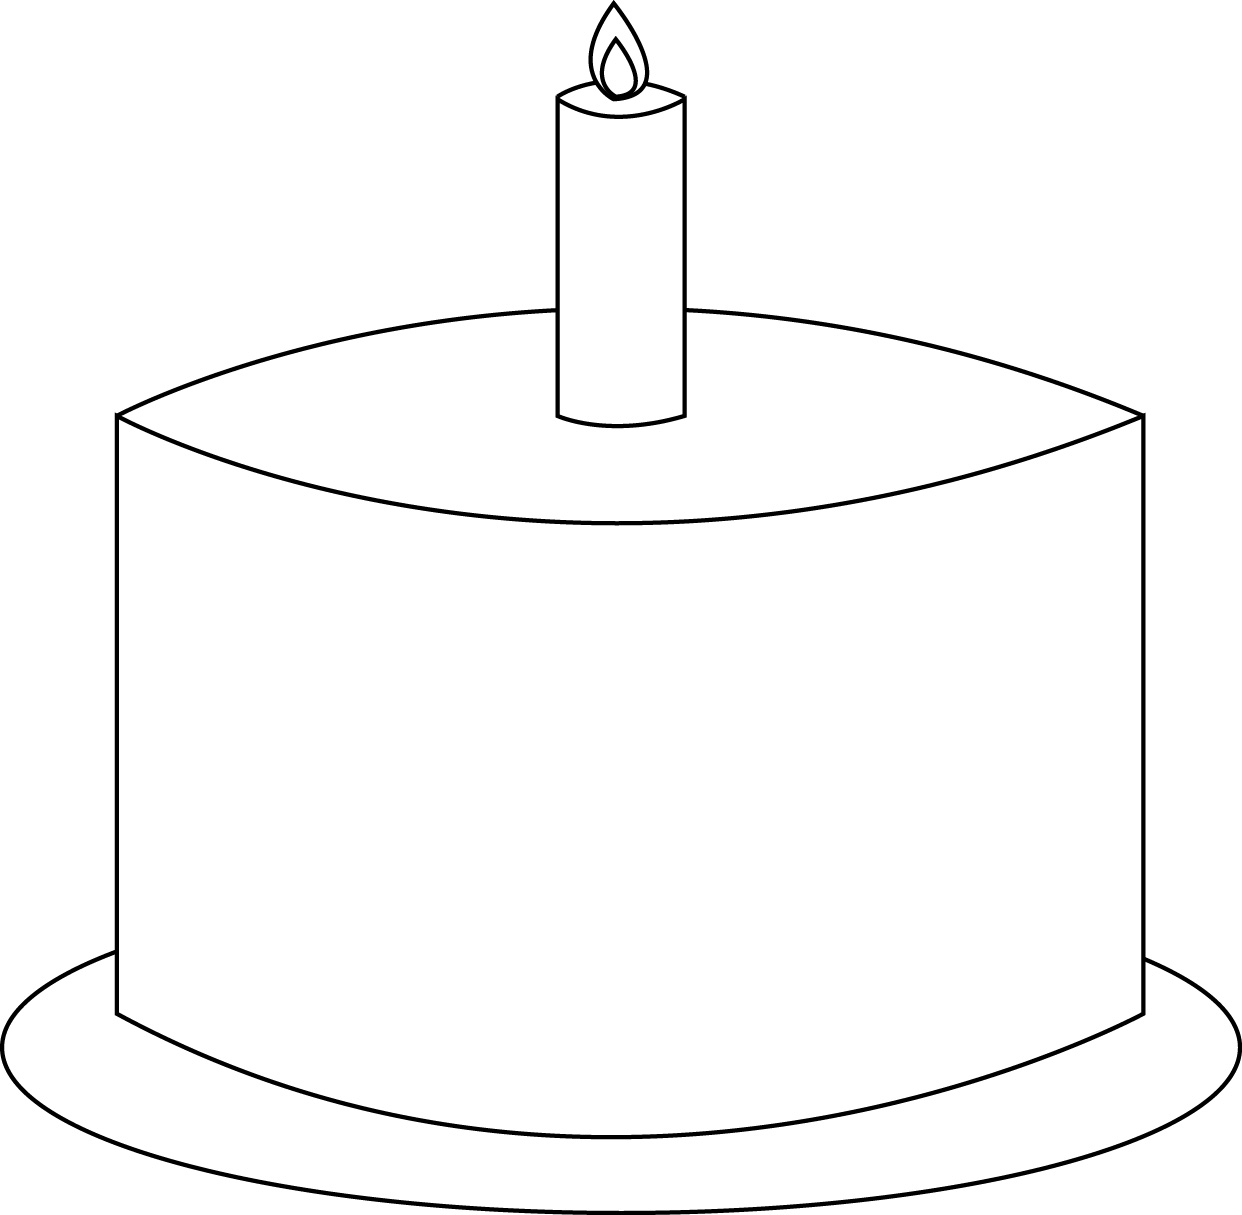 Printable Pictures For Cake : 5 Best Images of Birthday Cake Printable Template ...